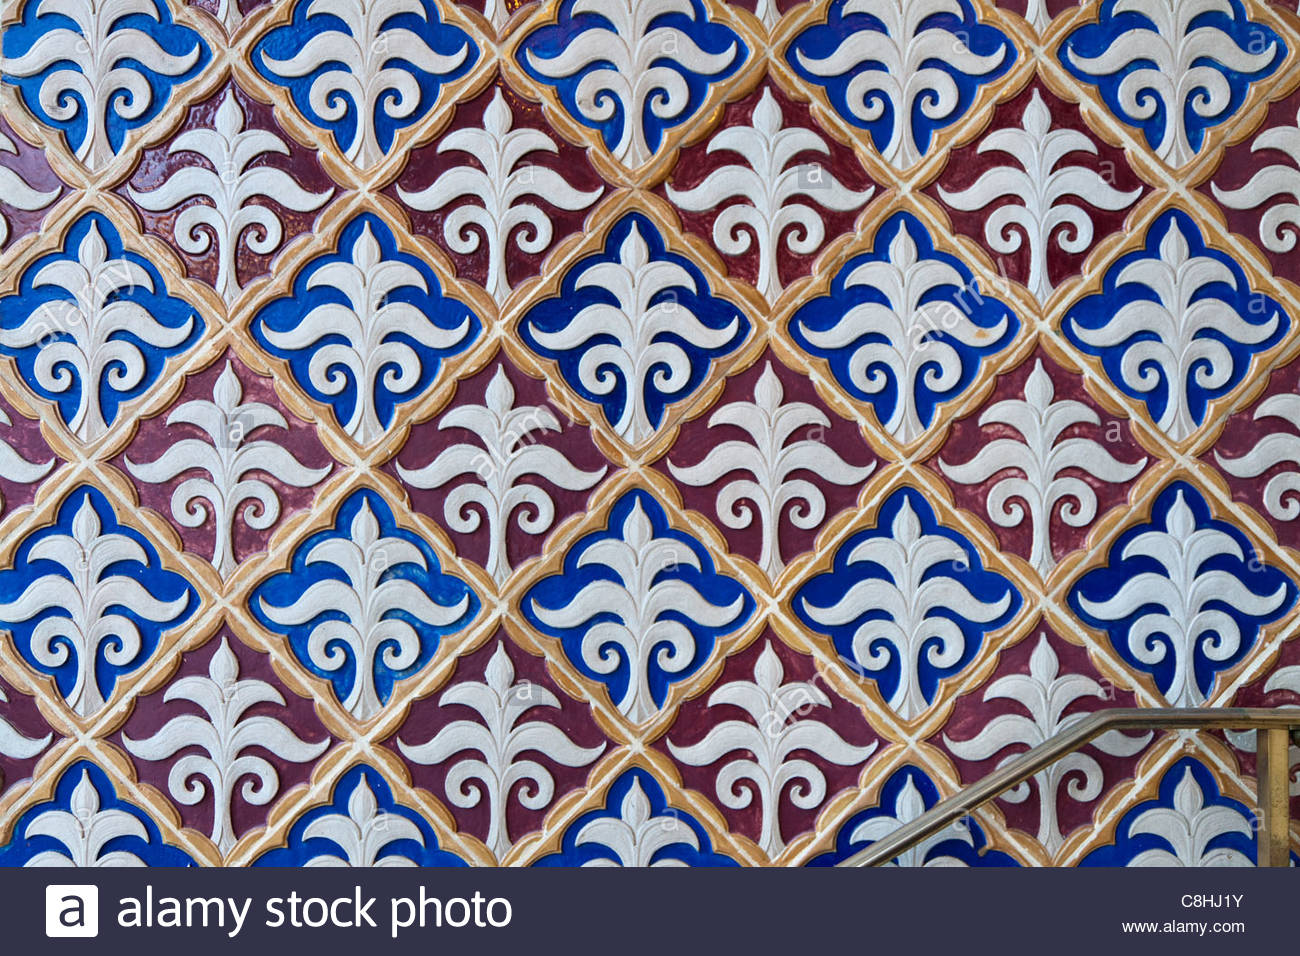 Colorful tile on an exterior wall. - Stock Image